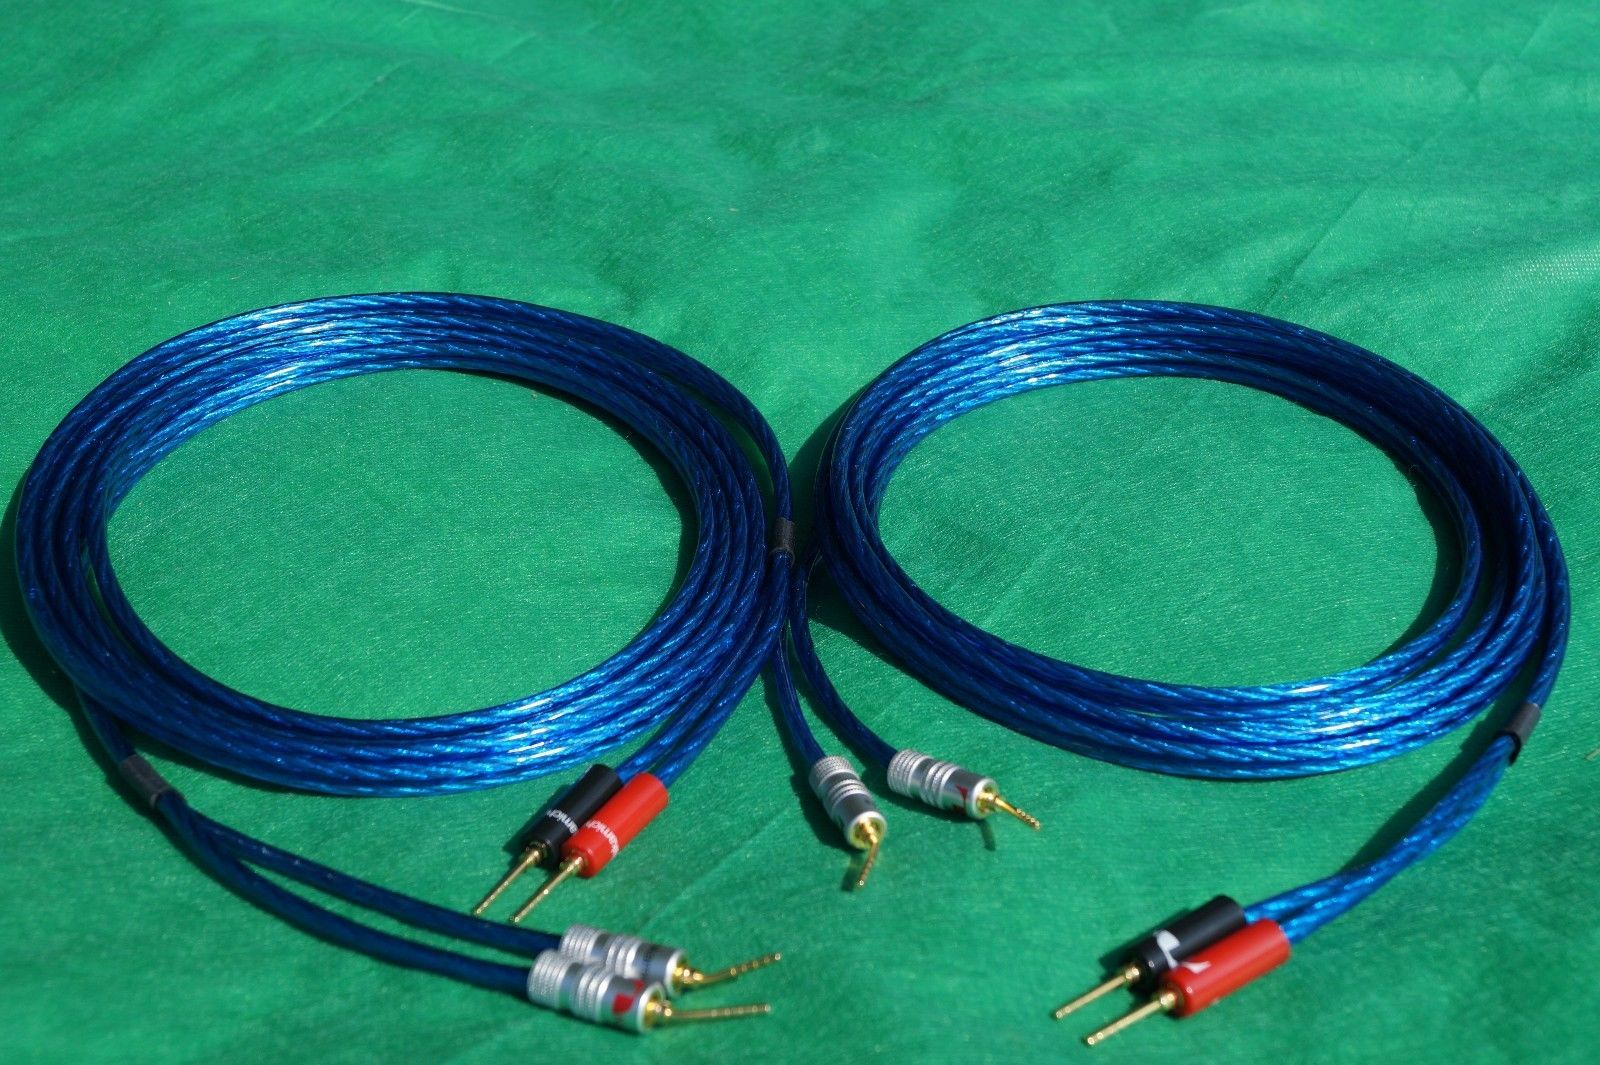 Samurai TRUE 10 Gauge Wire Speaker Cable to and similar items